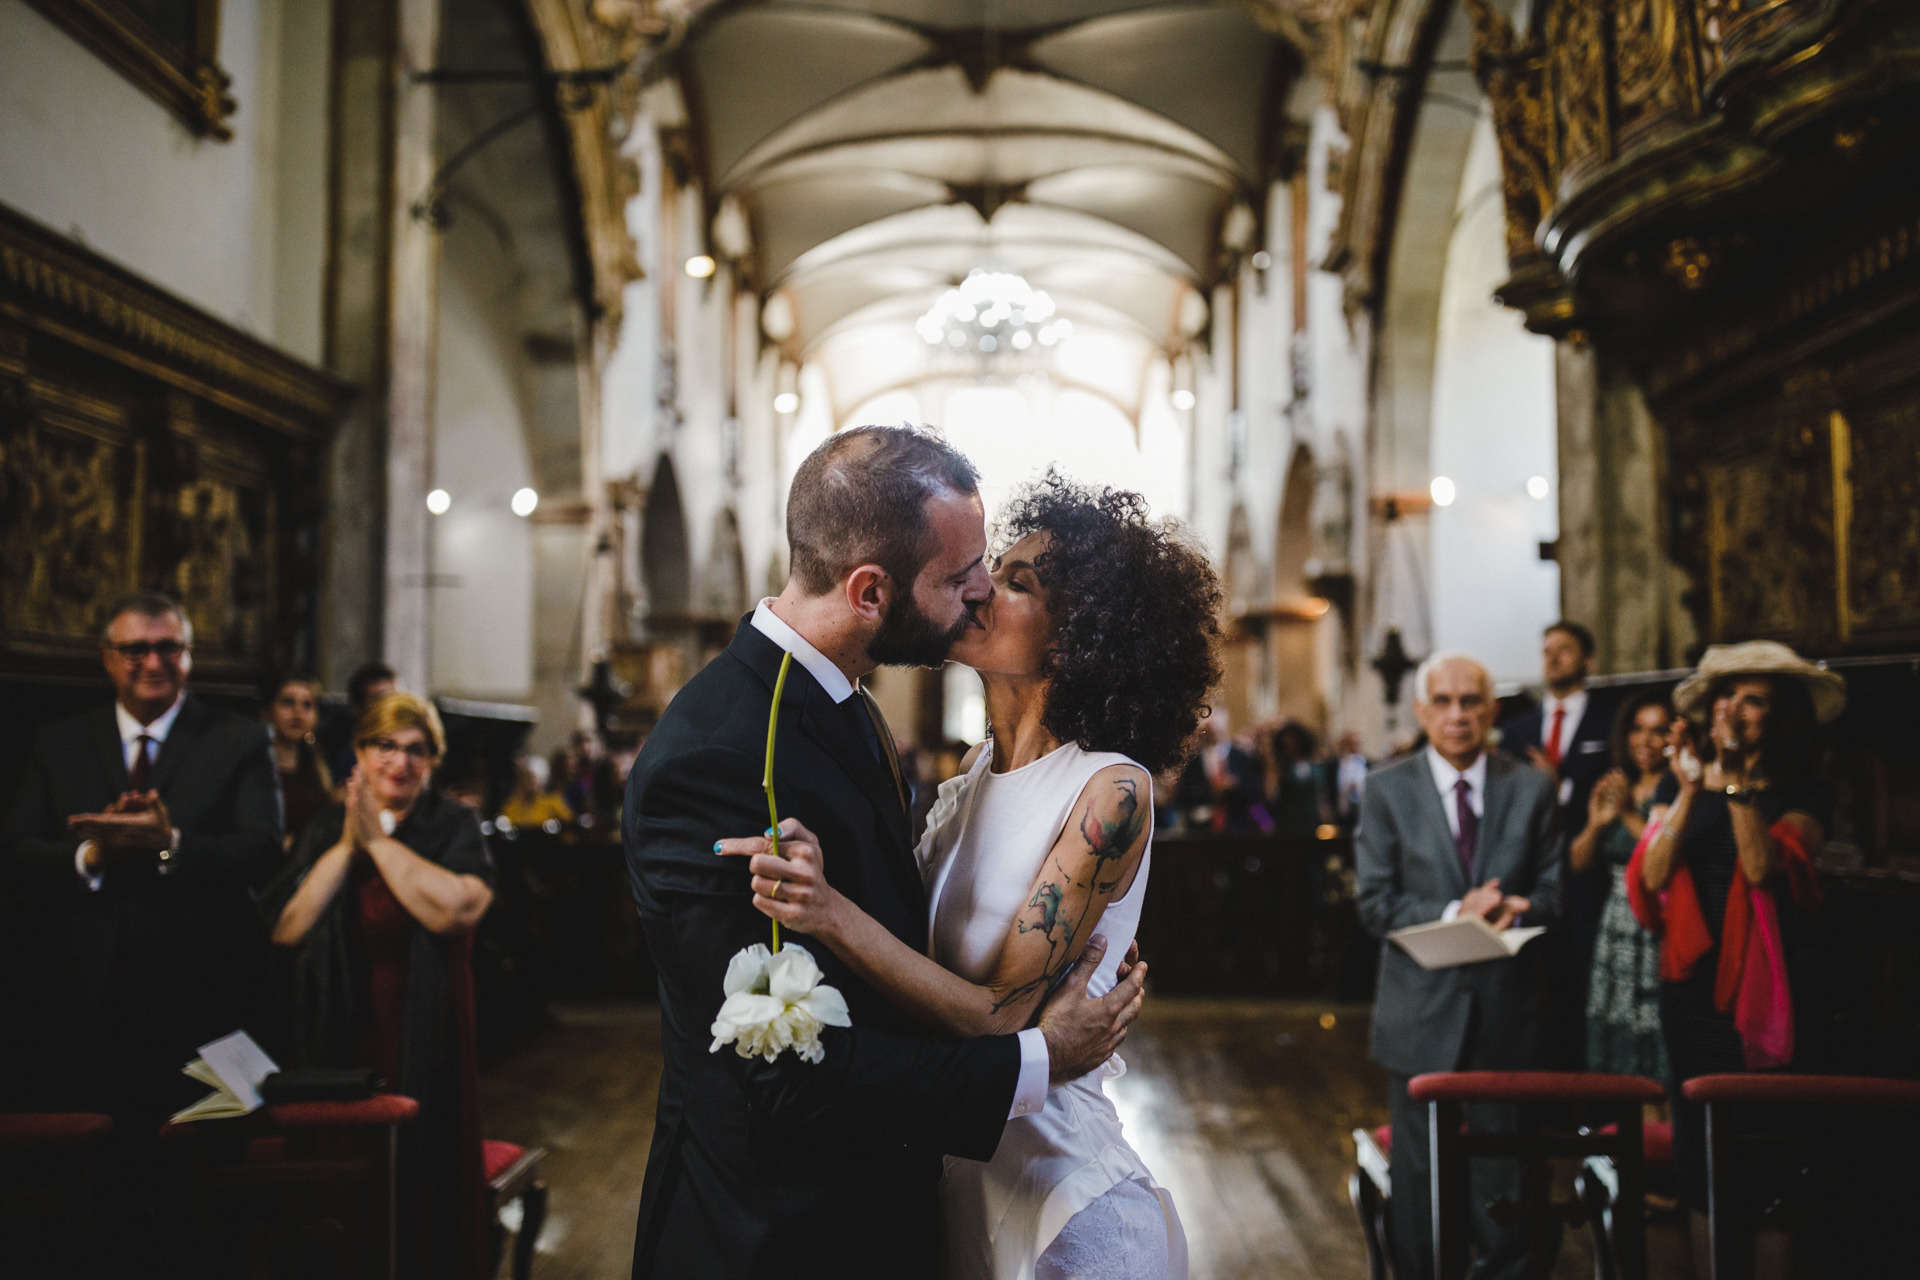 Daniel Monteiro, of , is a wedding photographer for Amares - Santa Maria do Bouro